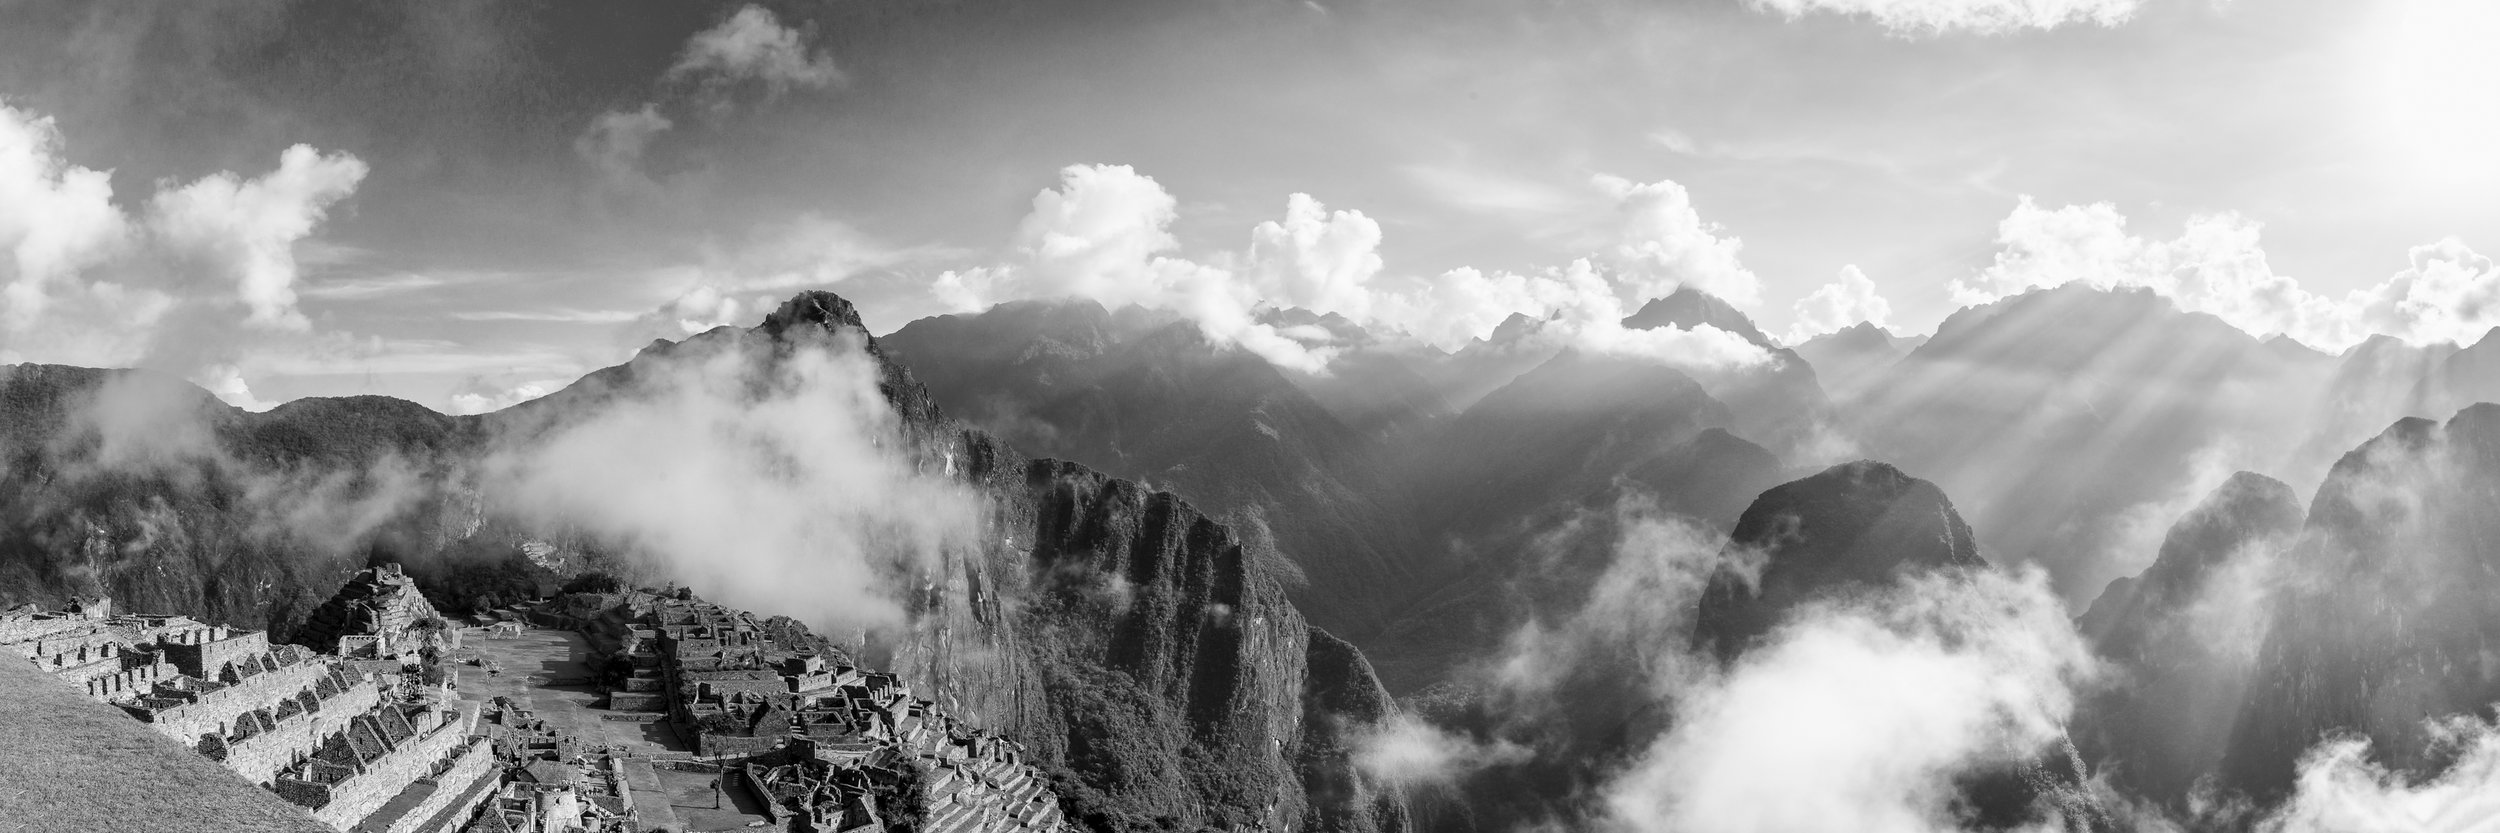 Cloud Citadel B&W  Size: 20 x 60 or 40 x 120 inches  Fujiflex Print; Acrylic Trans-mount  Available as limited edition of 100 prints